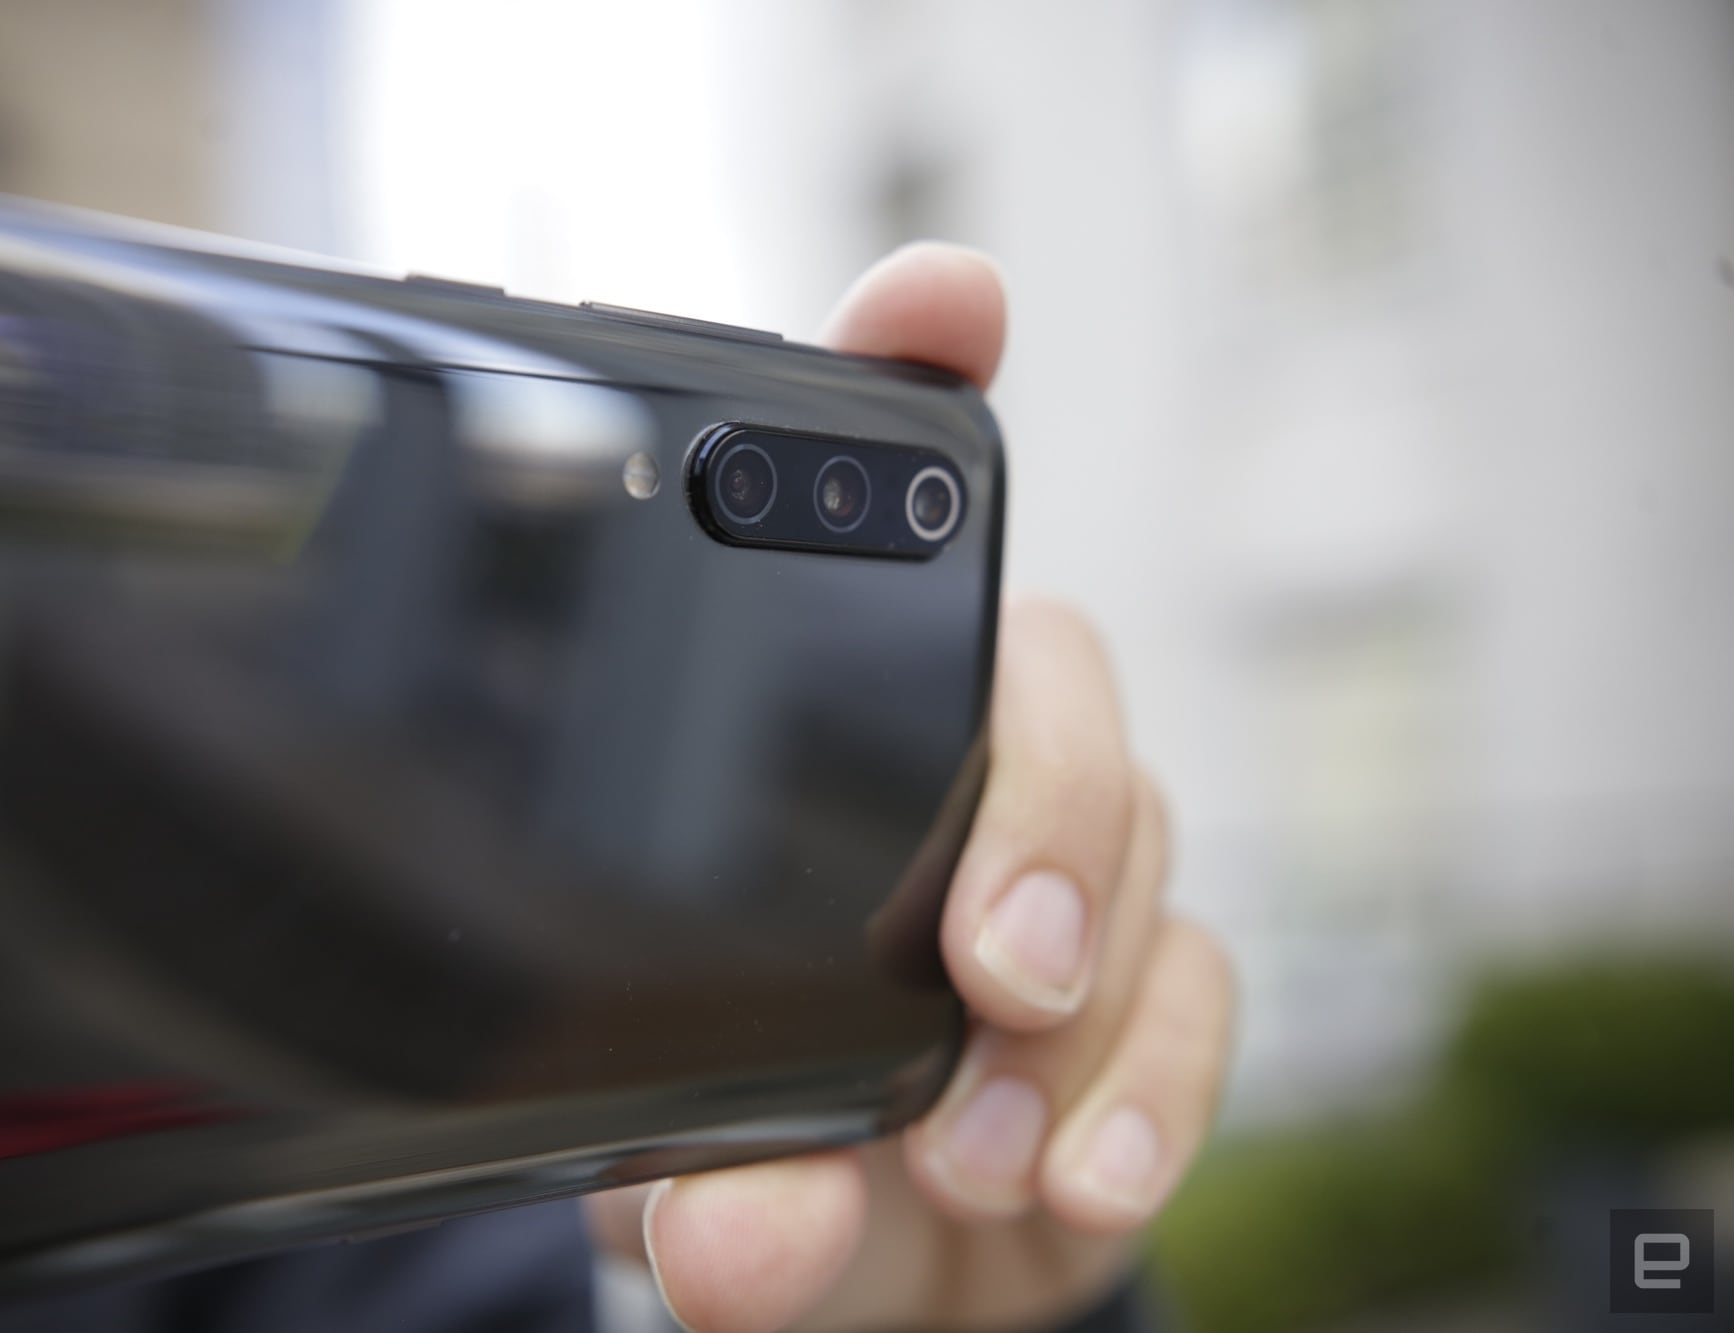 Xiaomi Mi 9 Ultra-Fast Smartphone is armed with a pro-level camera